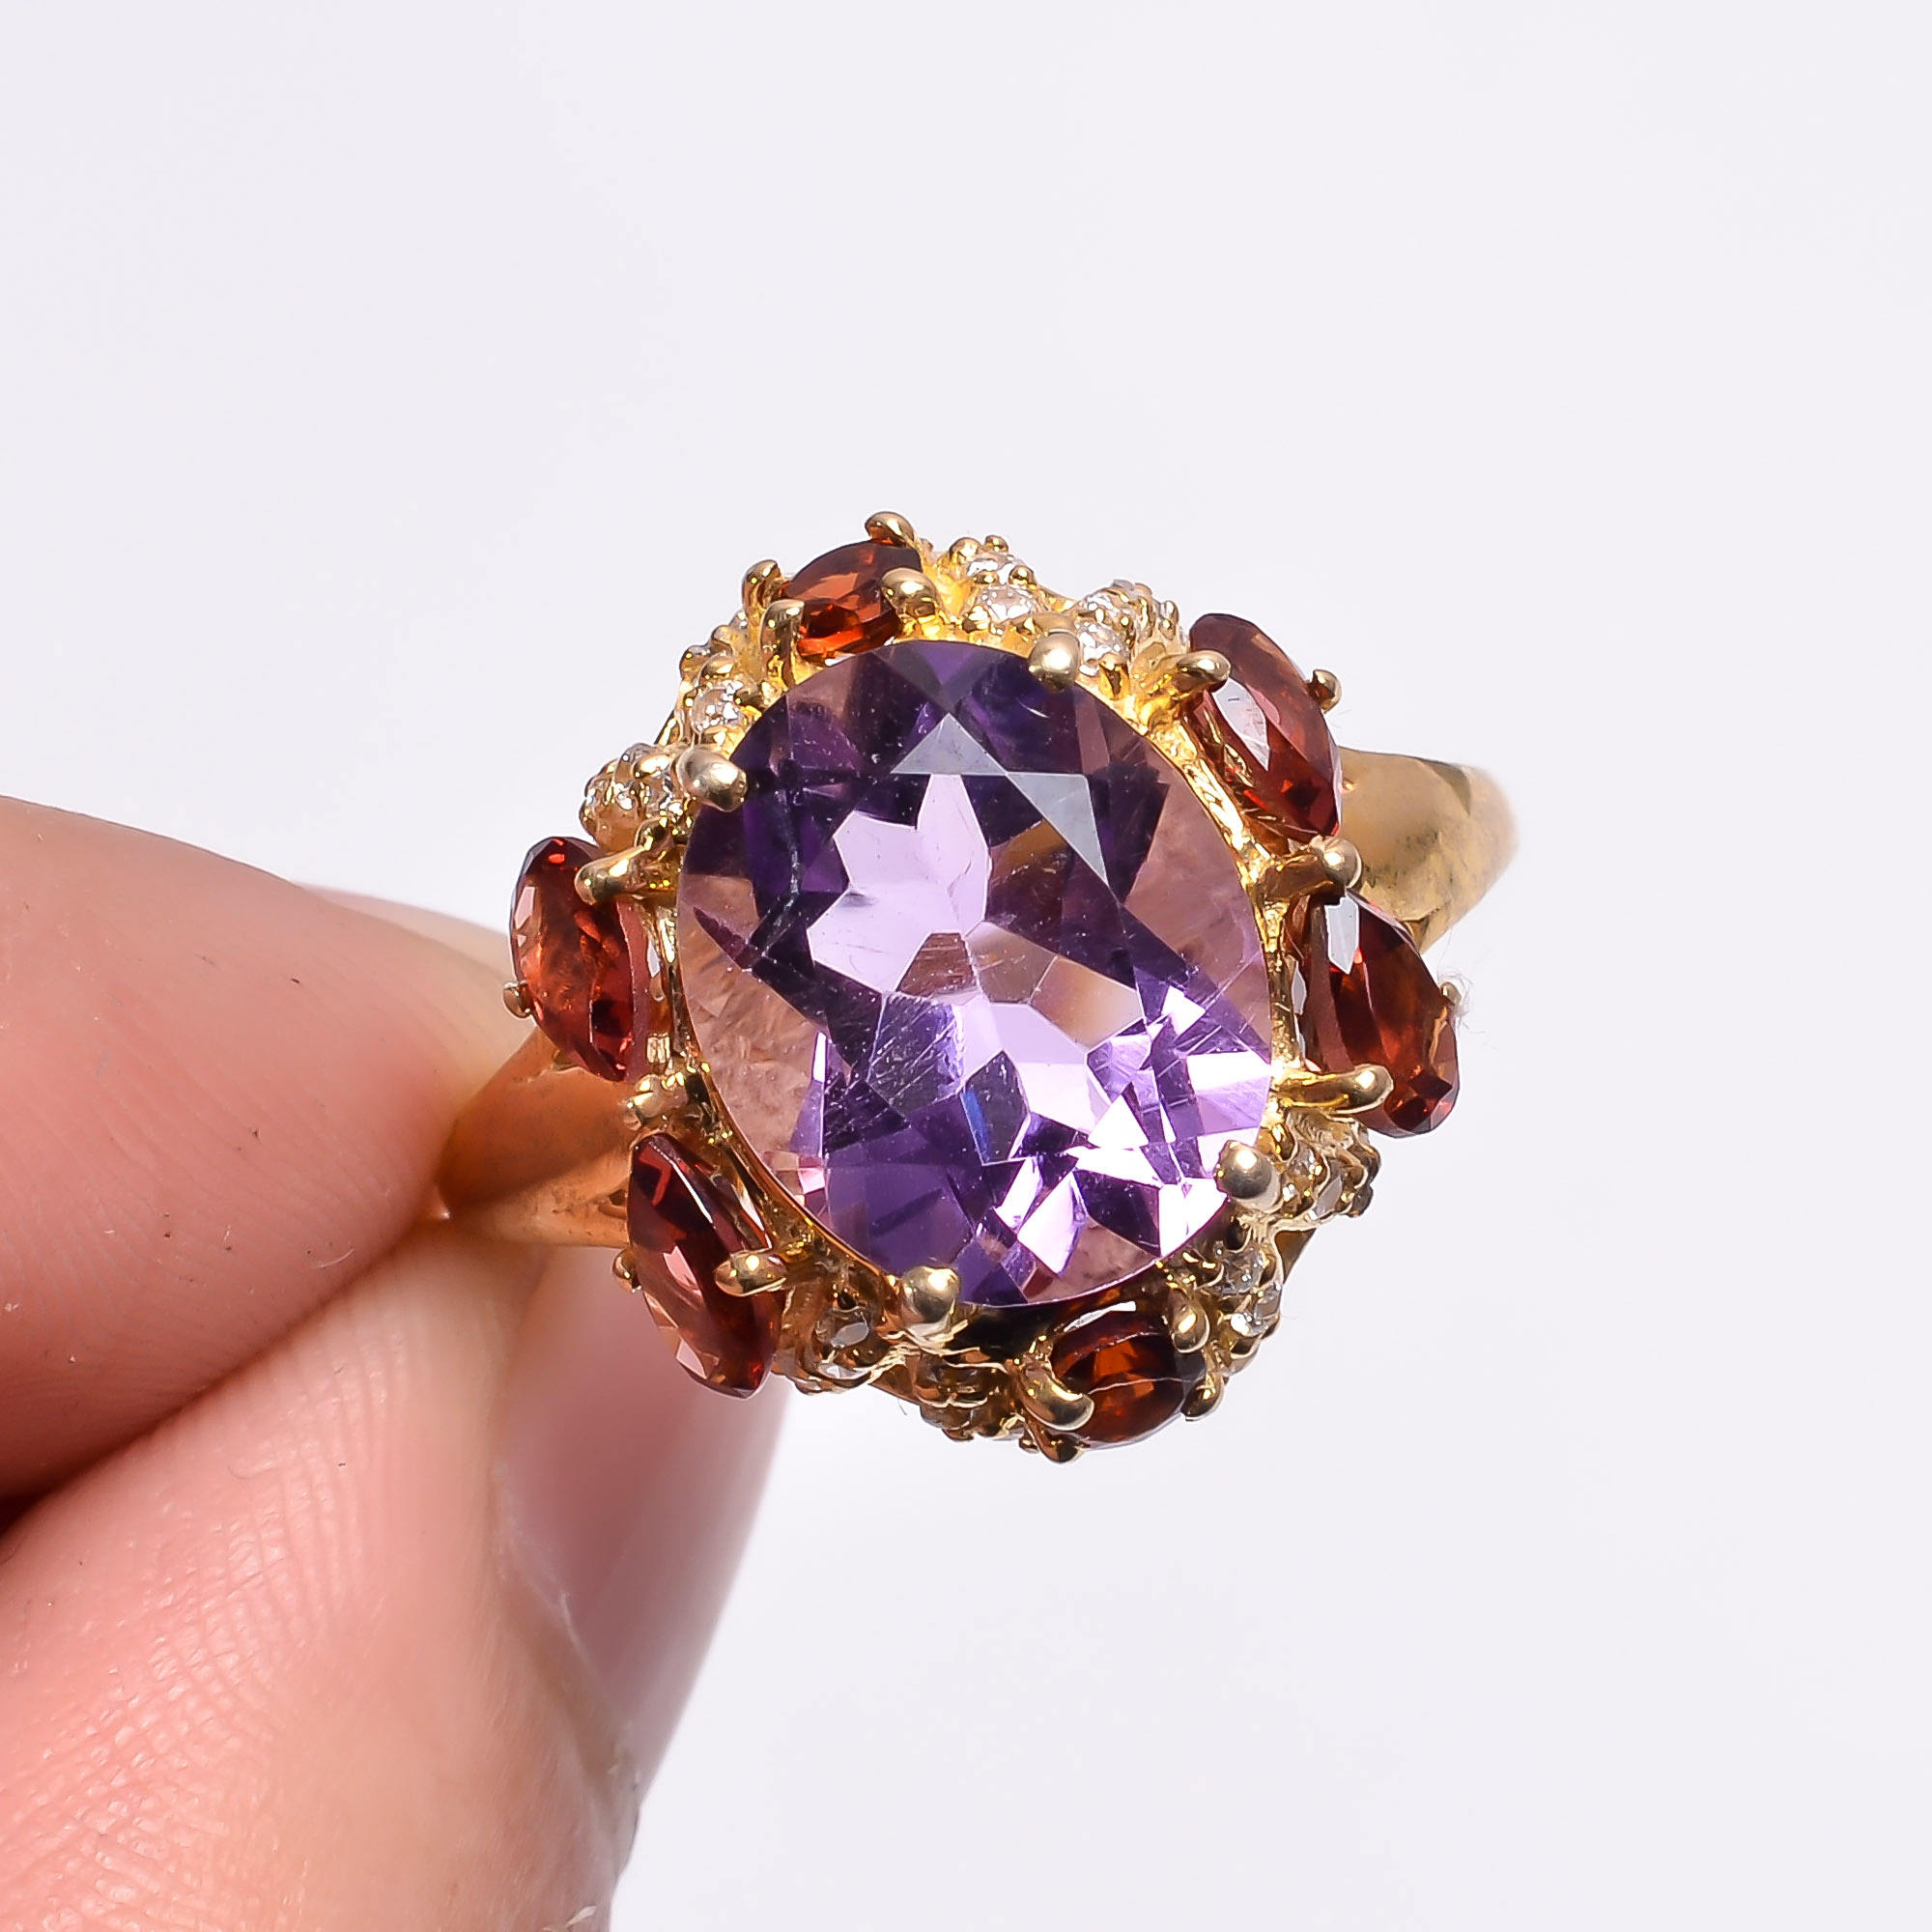 High Quality Natural Amethyst Garnet Zircon Gemstone 925 Sterling Silver Gold Plated Pave Designer Jewelry Ring US -7 SKR-131